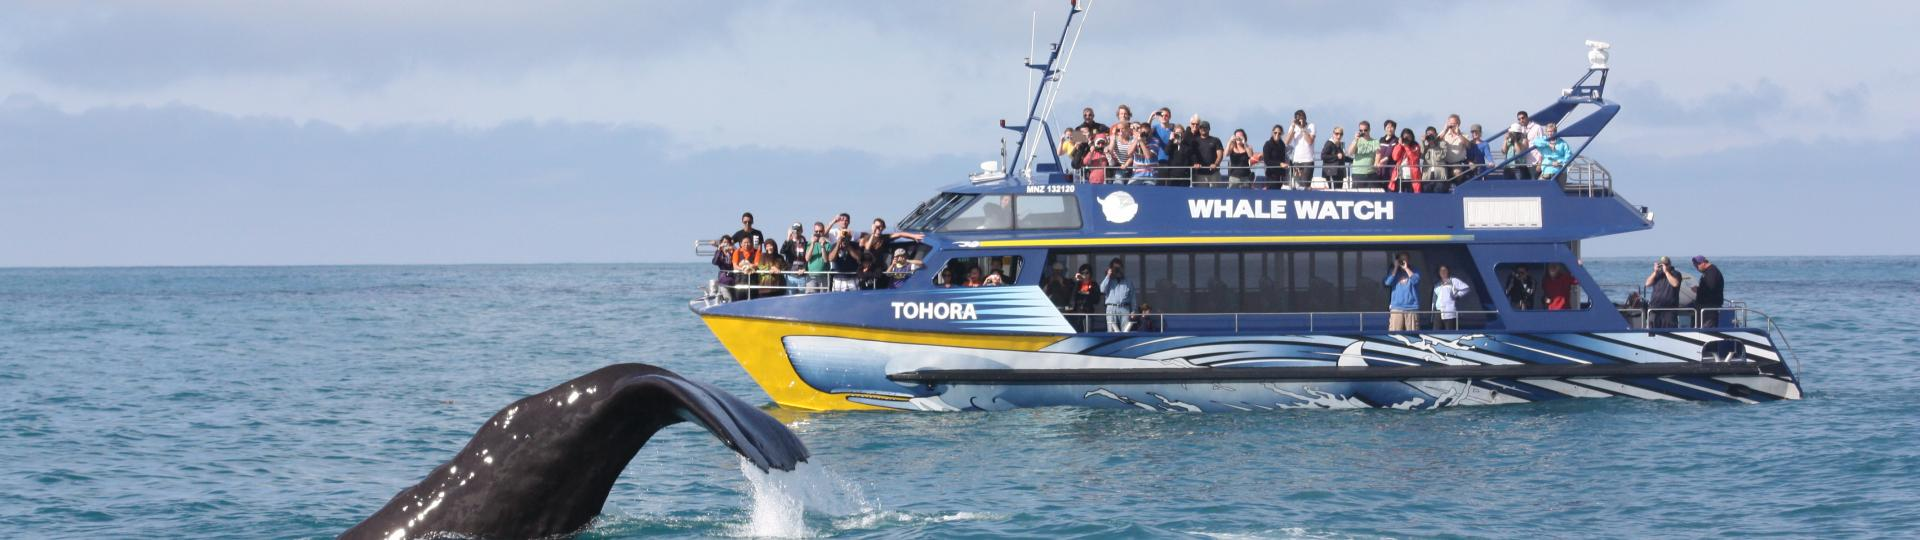 Whale Watch Tours & Kaikōura Day Tours.